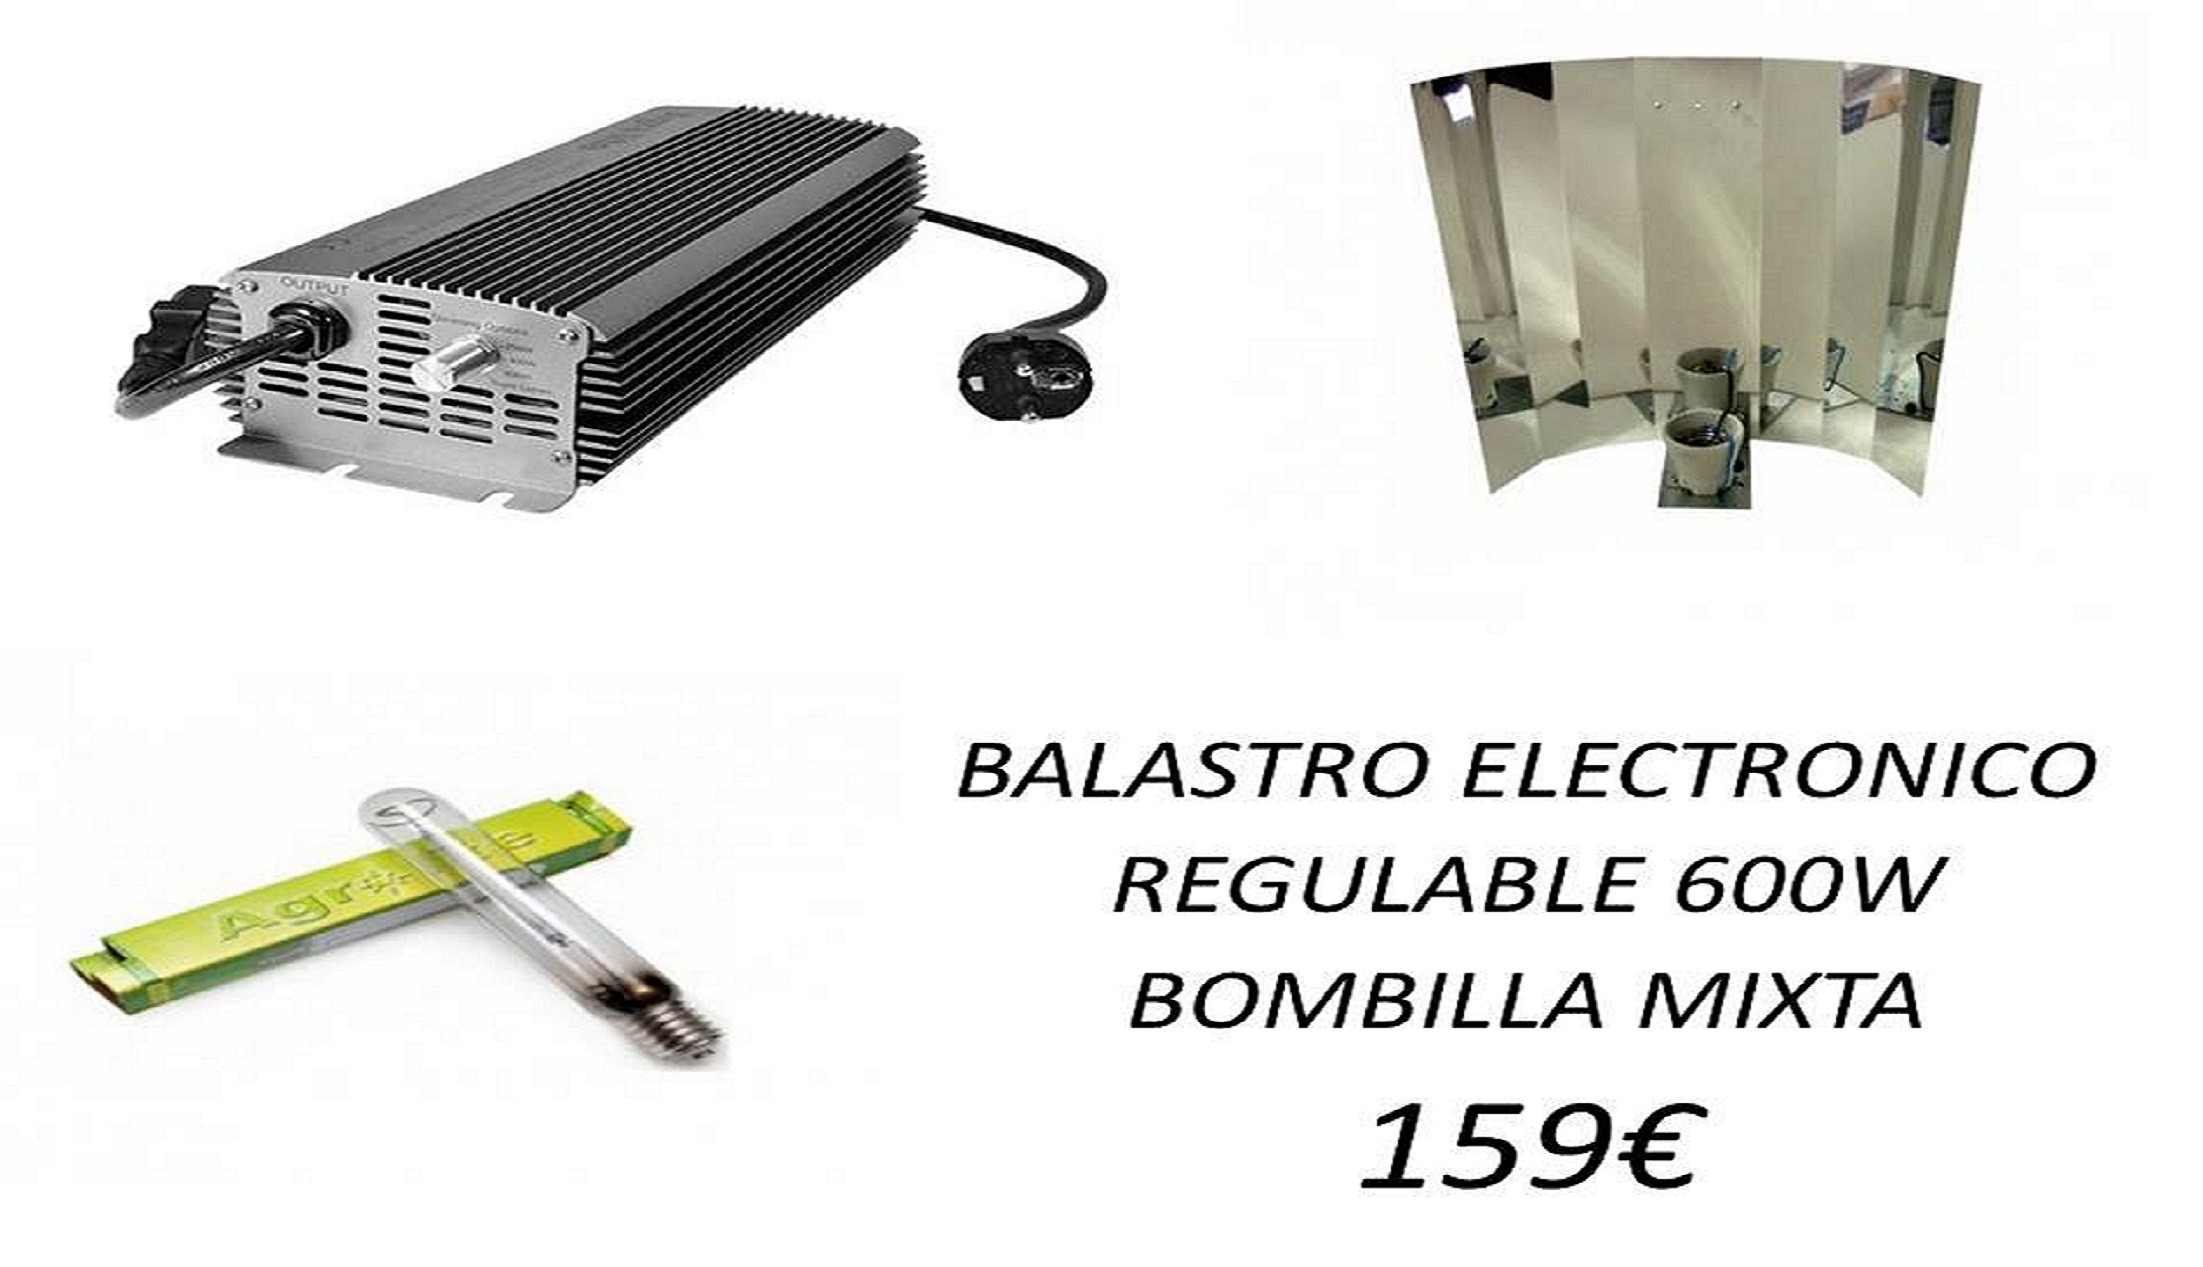 KIT ELECTRONICO AGROLITE 600W